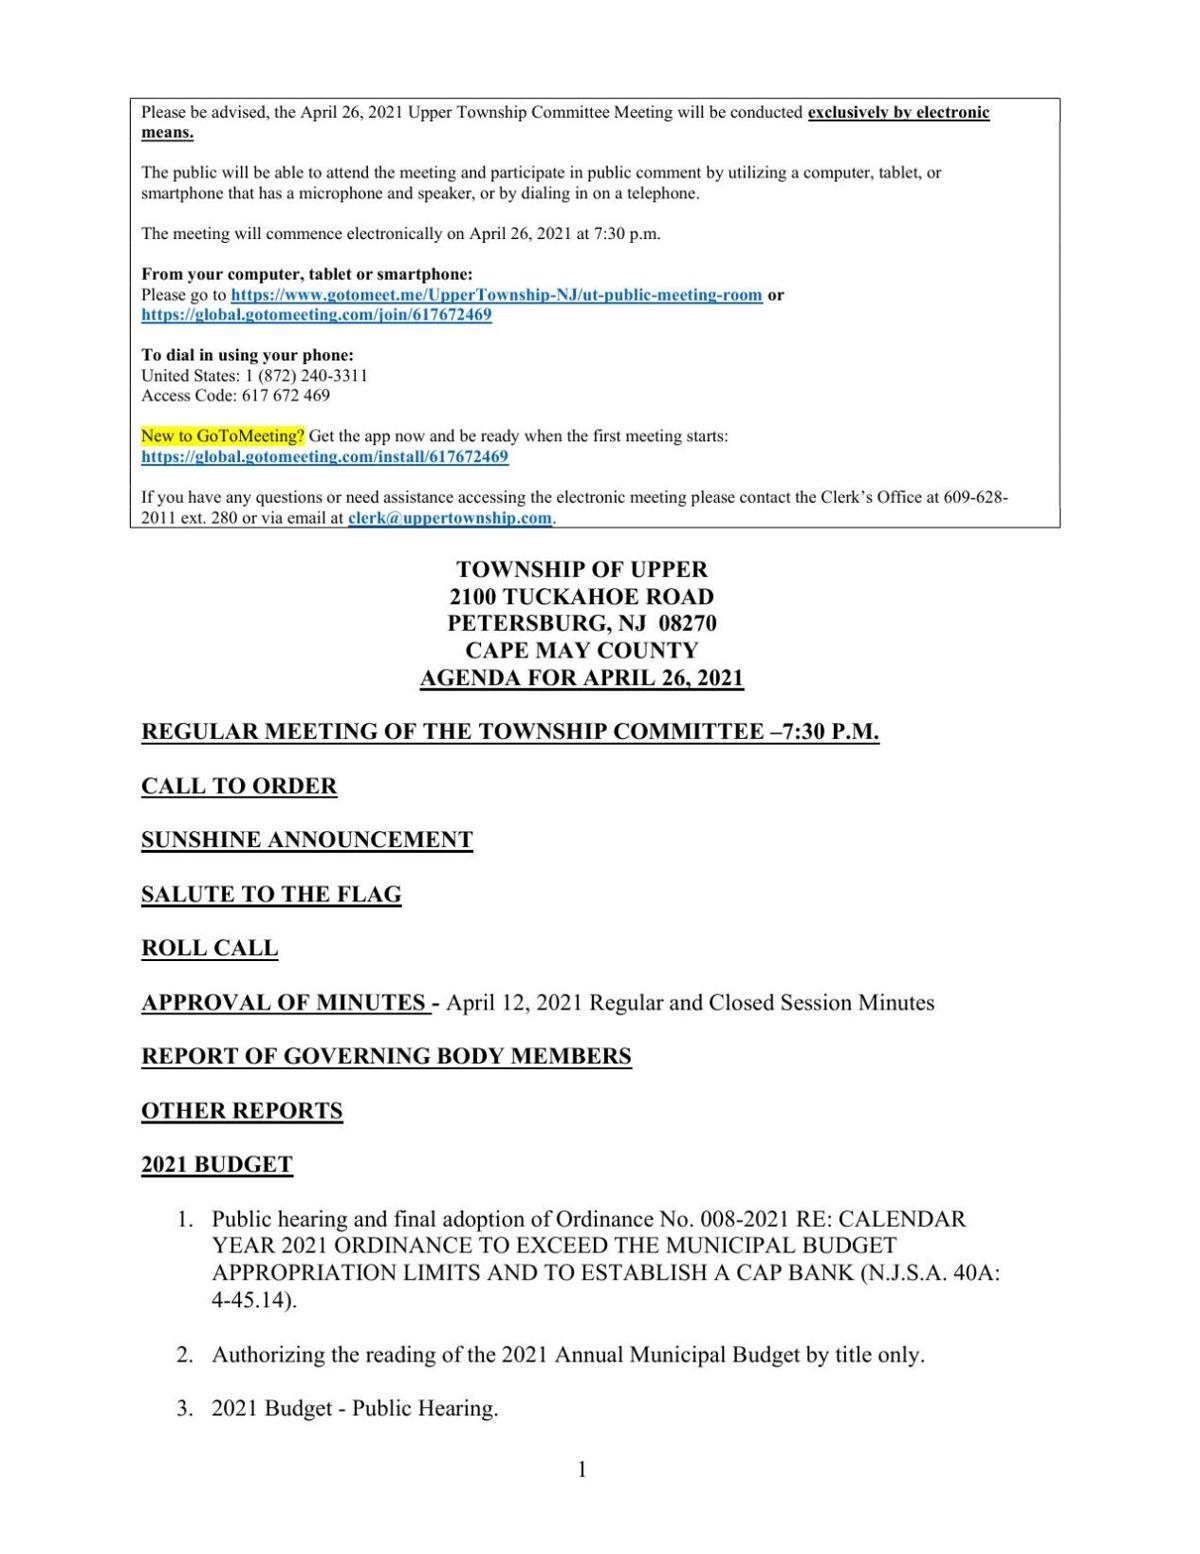 Upper Township Committee Meeting Agenda April 26, 2021